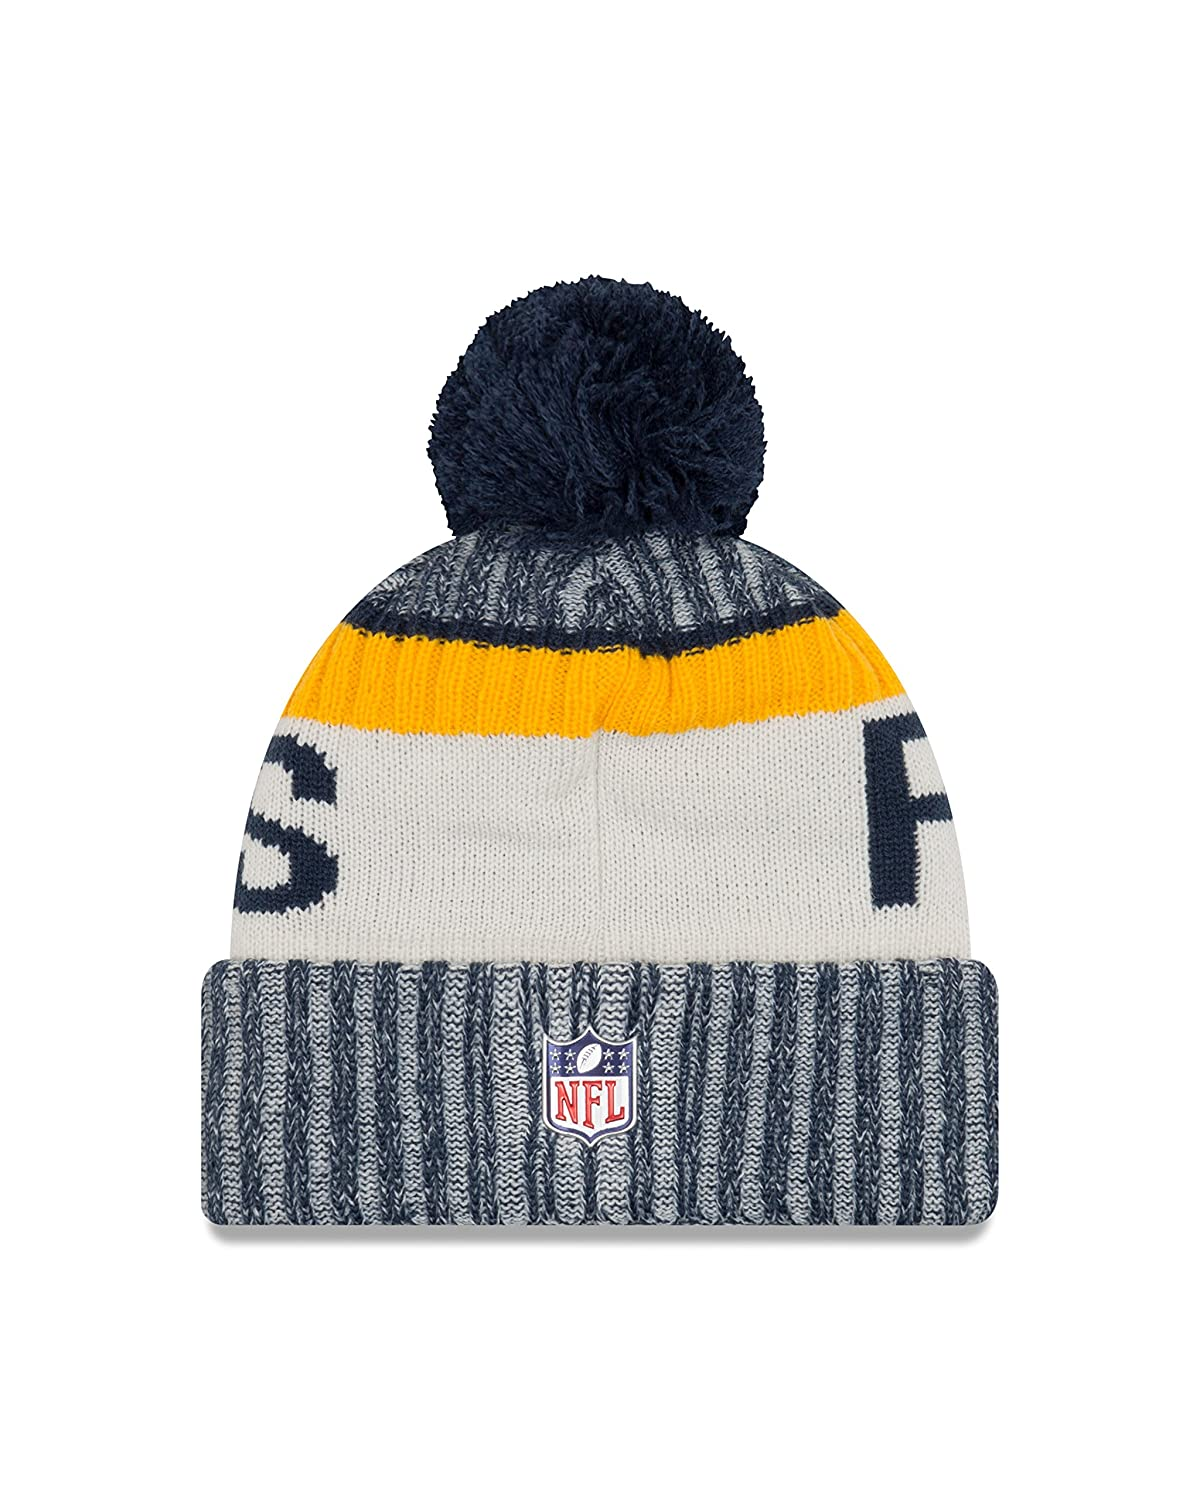 d1588cdc6 Amazon.com   New Era Green Bay Packers Knit Beanie Cap Hat NFL 2017 On  Field 11462739   Sports   Outdoors